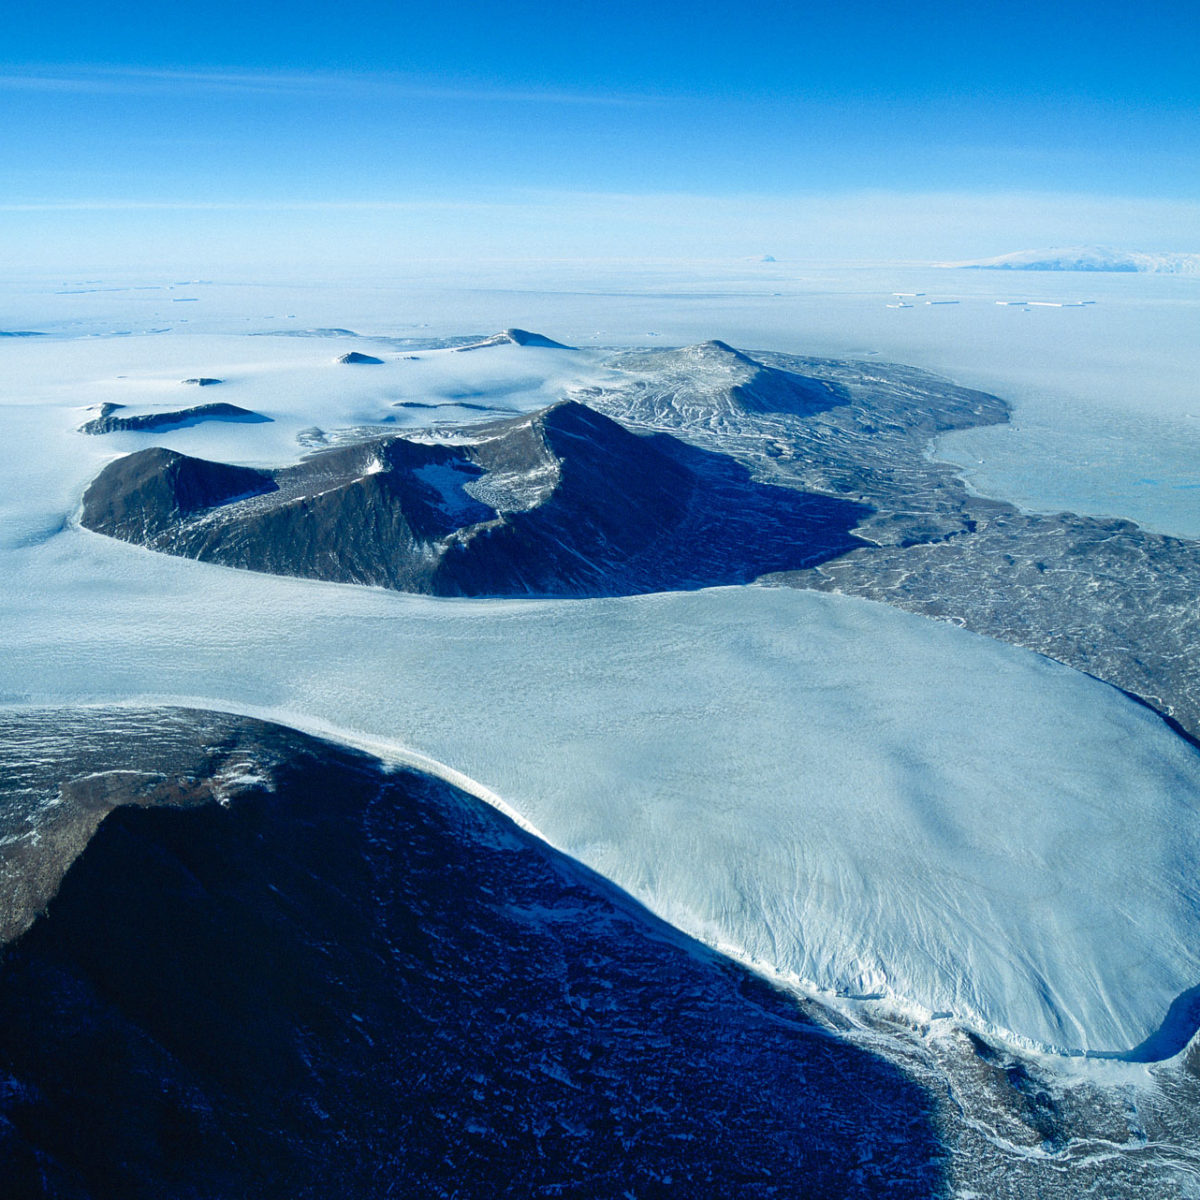 Taylor Valley - Commonwealth Glacier and Mc Murdo Sound - Victoria Land - Antarctica (South Pole) (77°34' S - 164°11' E)